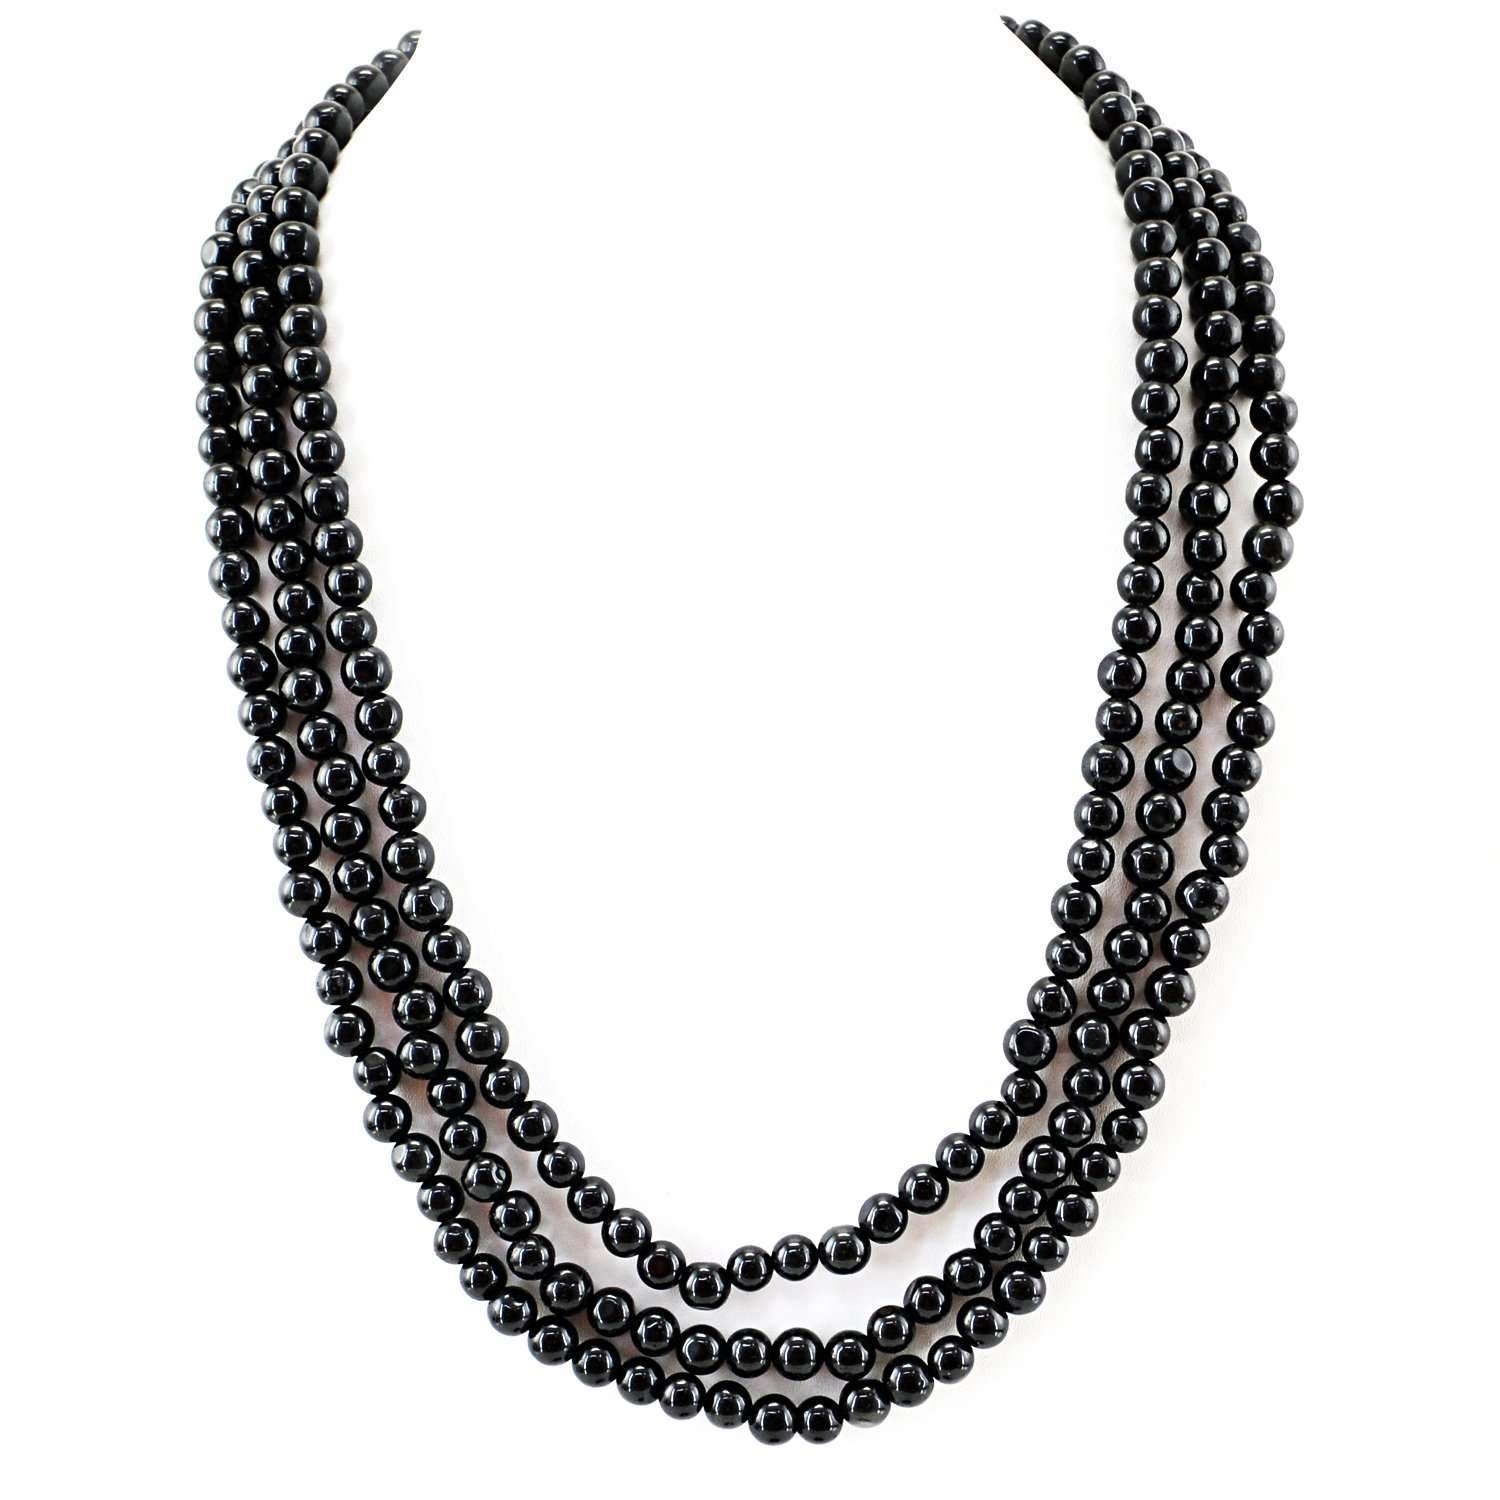 gemsmore:3 Strand Black Spinel Necklace Natural Round Shape Beads